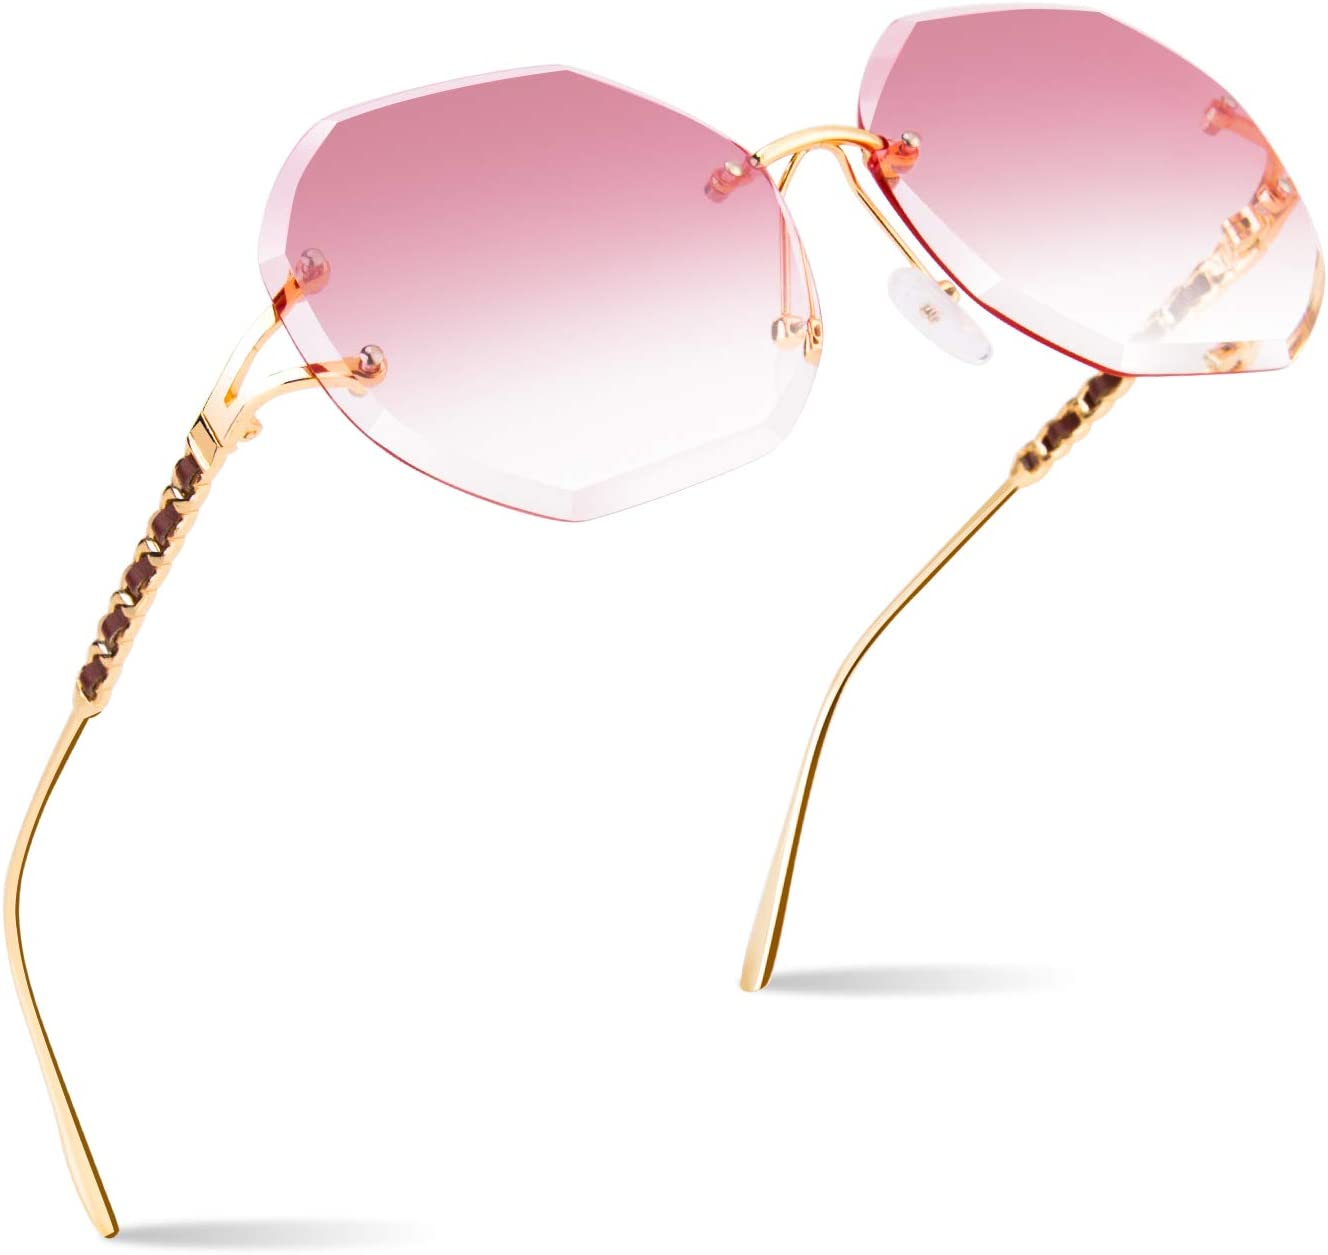 CGID Sunglasses for Women Rimless Sun Glasses for Lady Frameless Shades UV400 Protection Dark Glasses 100/% UV 400 Goggles for Driving Diamond Cutting Metal Temple Leather Decoration Gradient Pink Lens